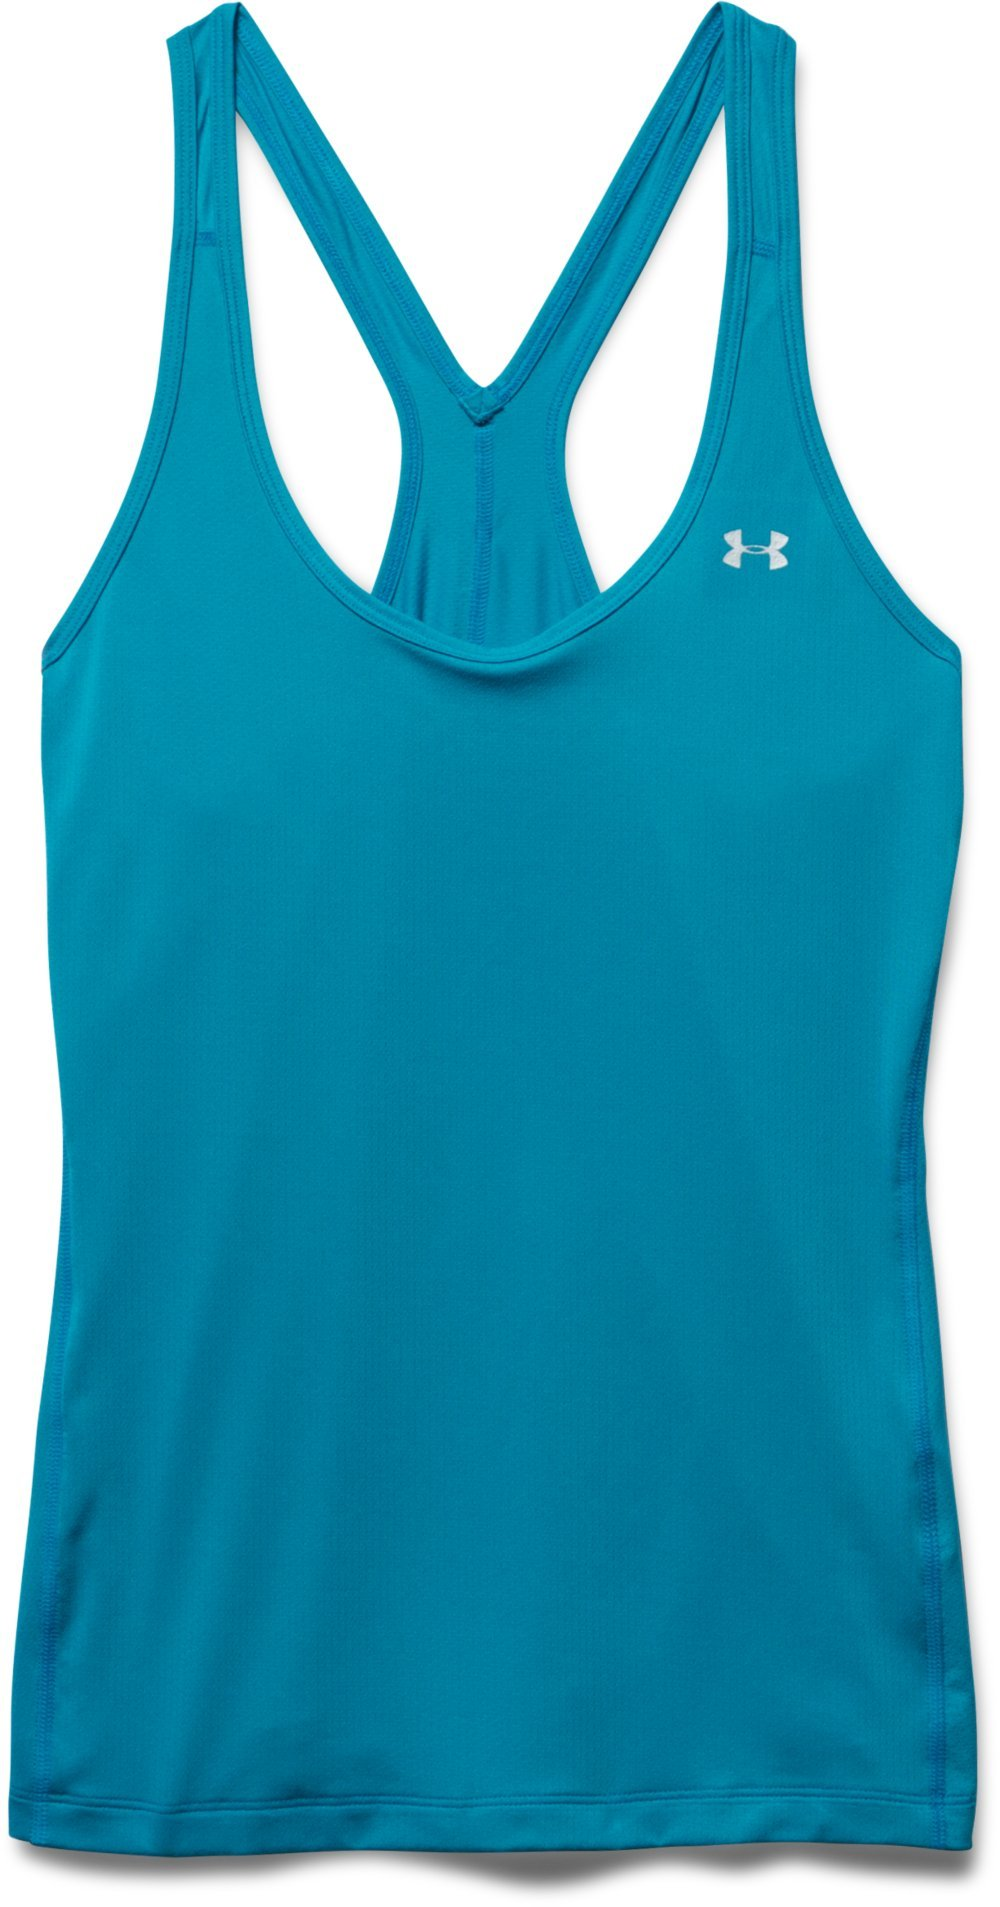 Under Armour Women's HeatGear Armour Racer Tank Top, Aqua Blue (908)/Metallic Silver, Small by Under Armour (Image #3)